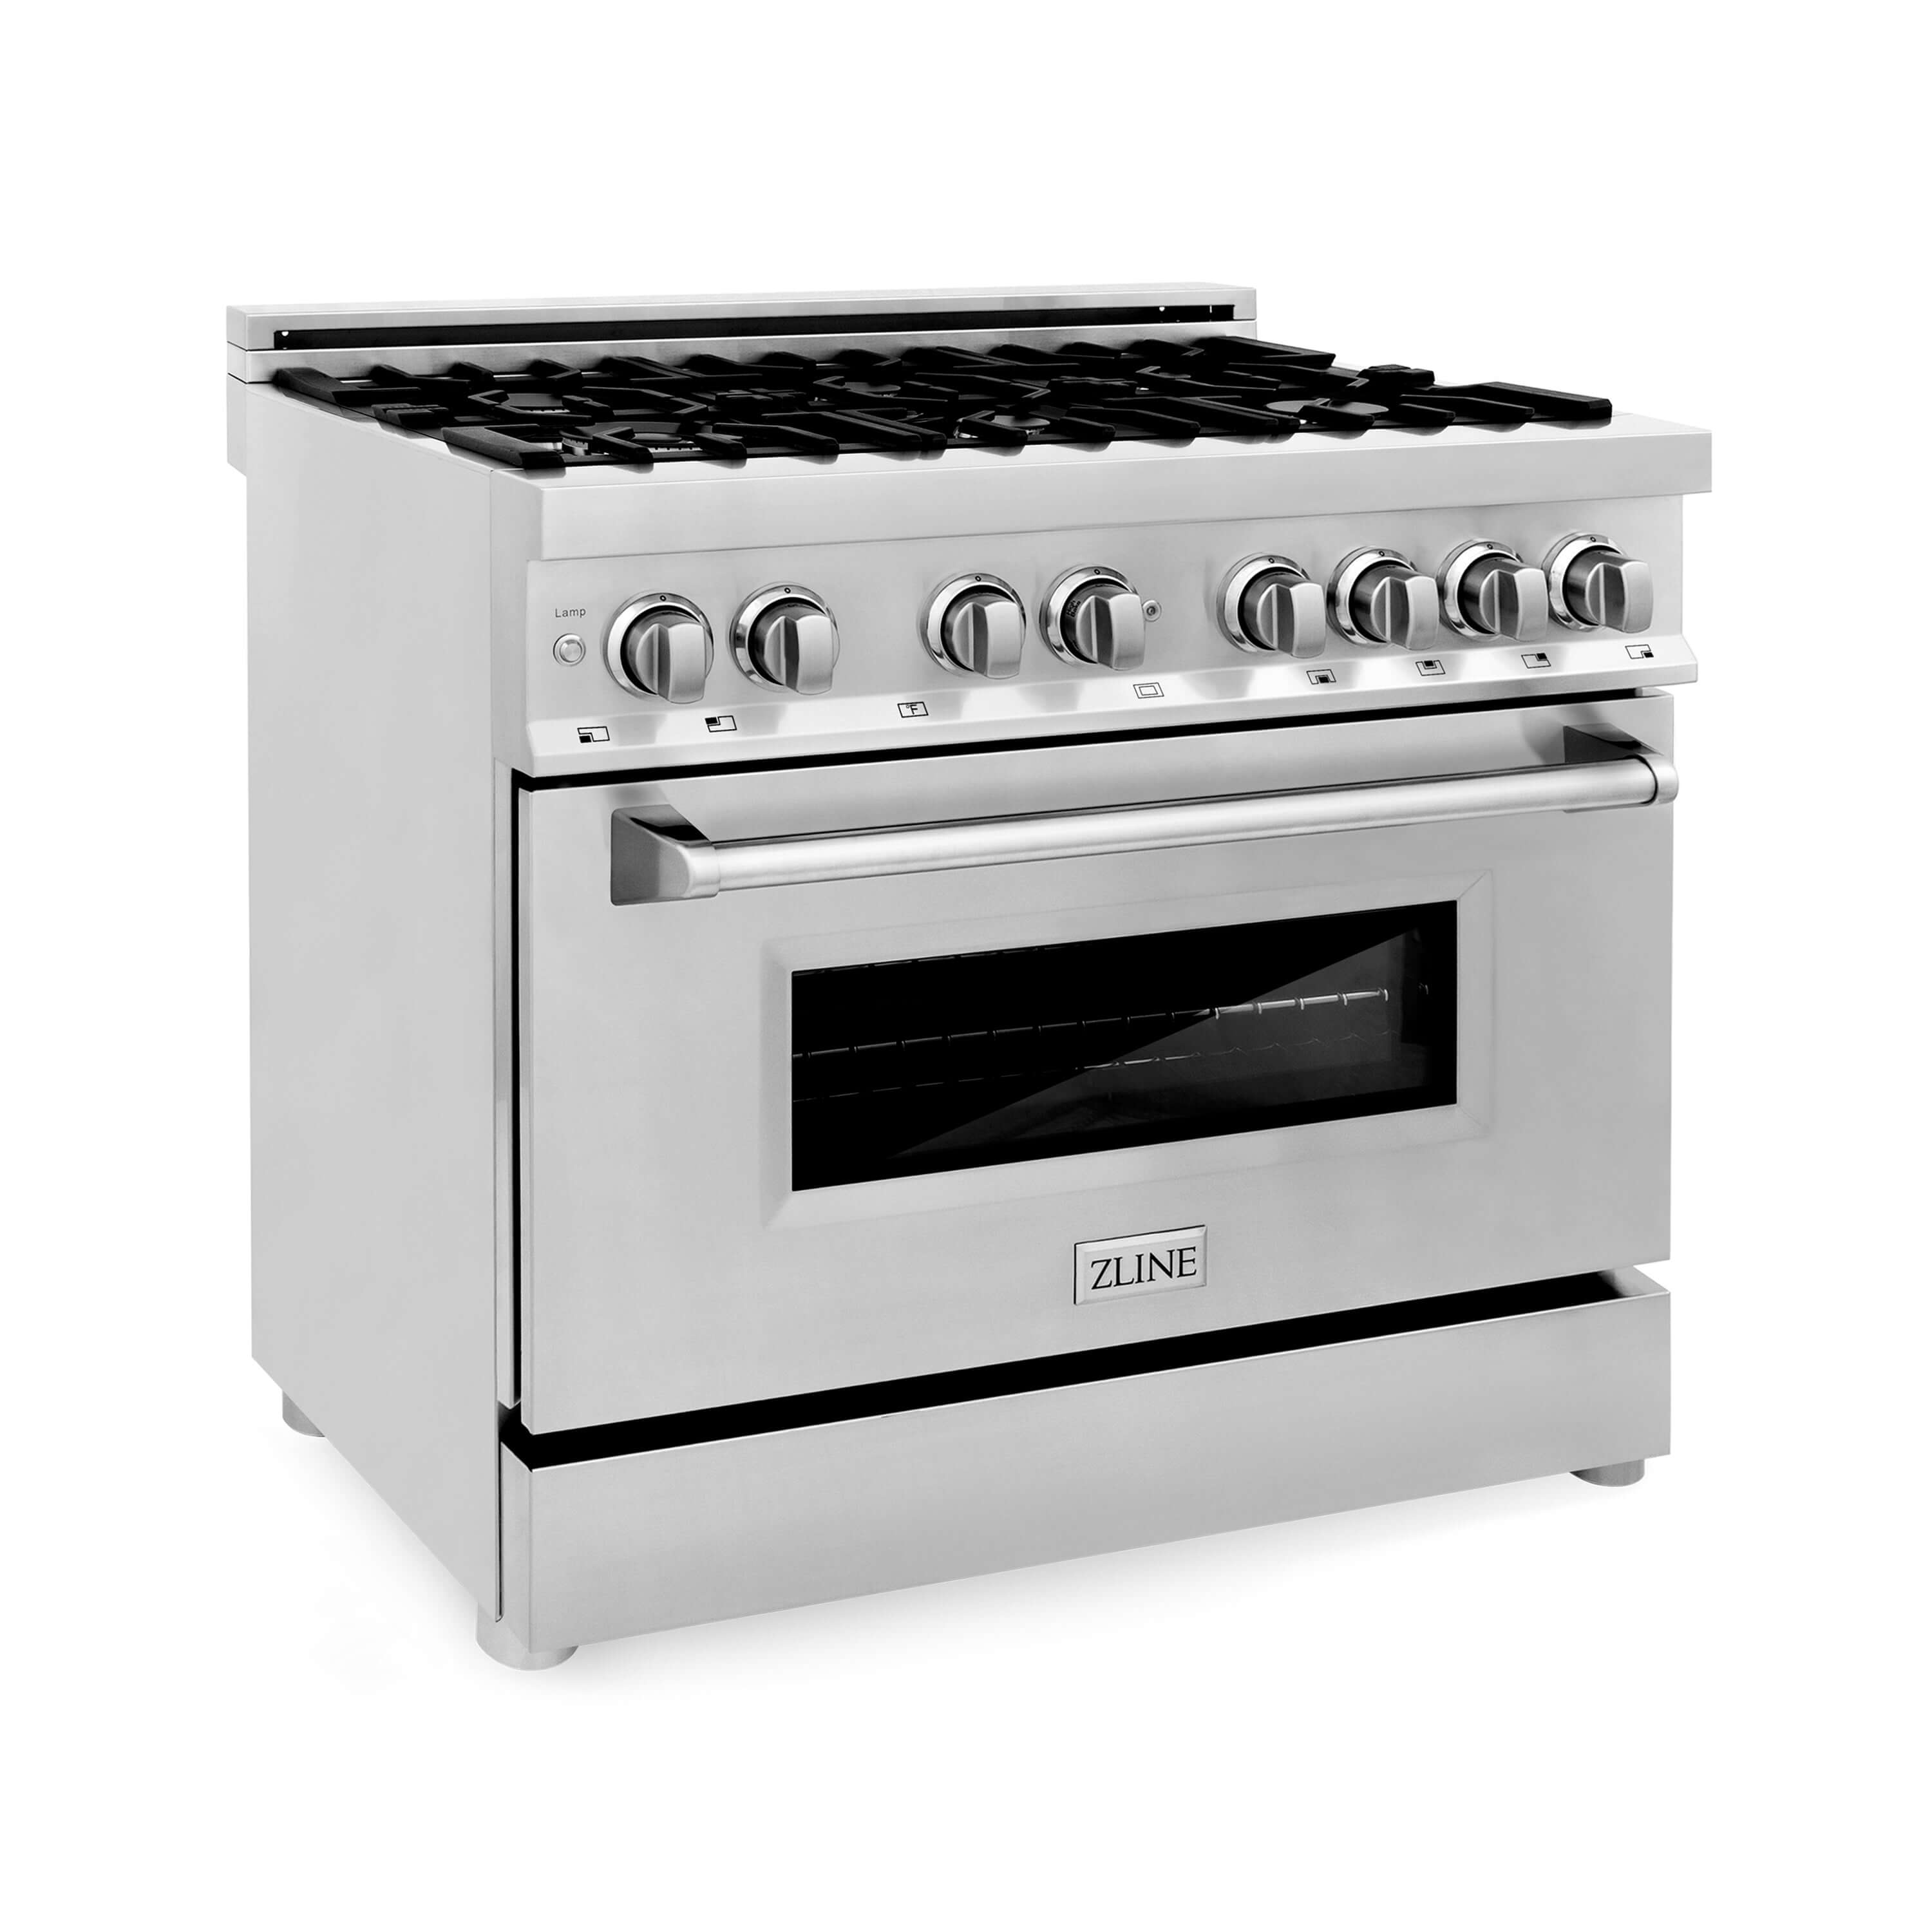 "ZLINE 36"" Dual Fuel Range with Gas Stove and Electric Oven in Stainless Steel with Color Door Options (RA36)"